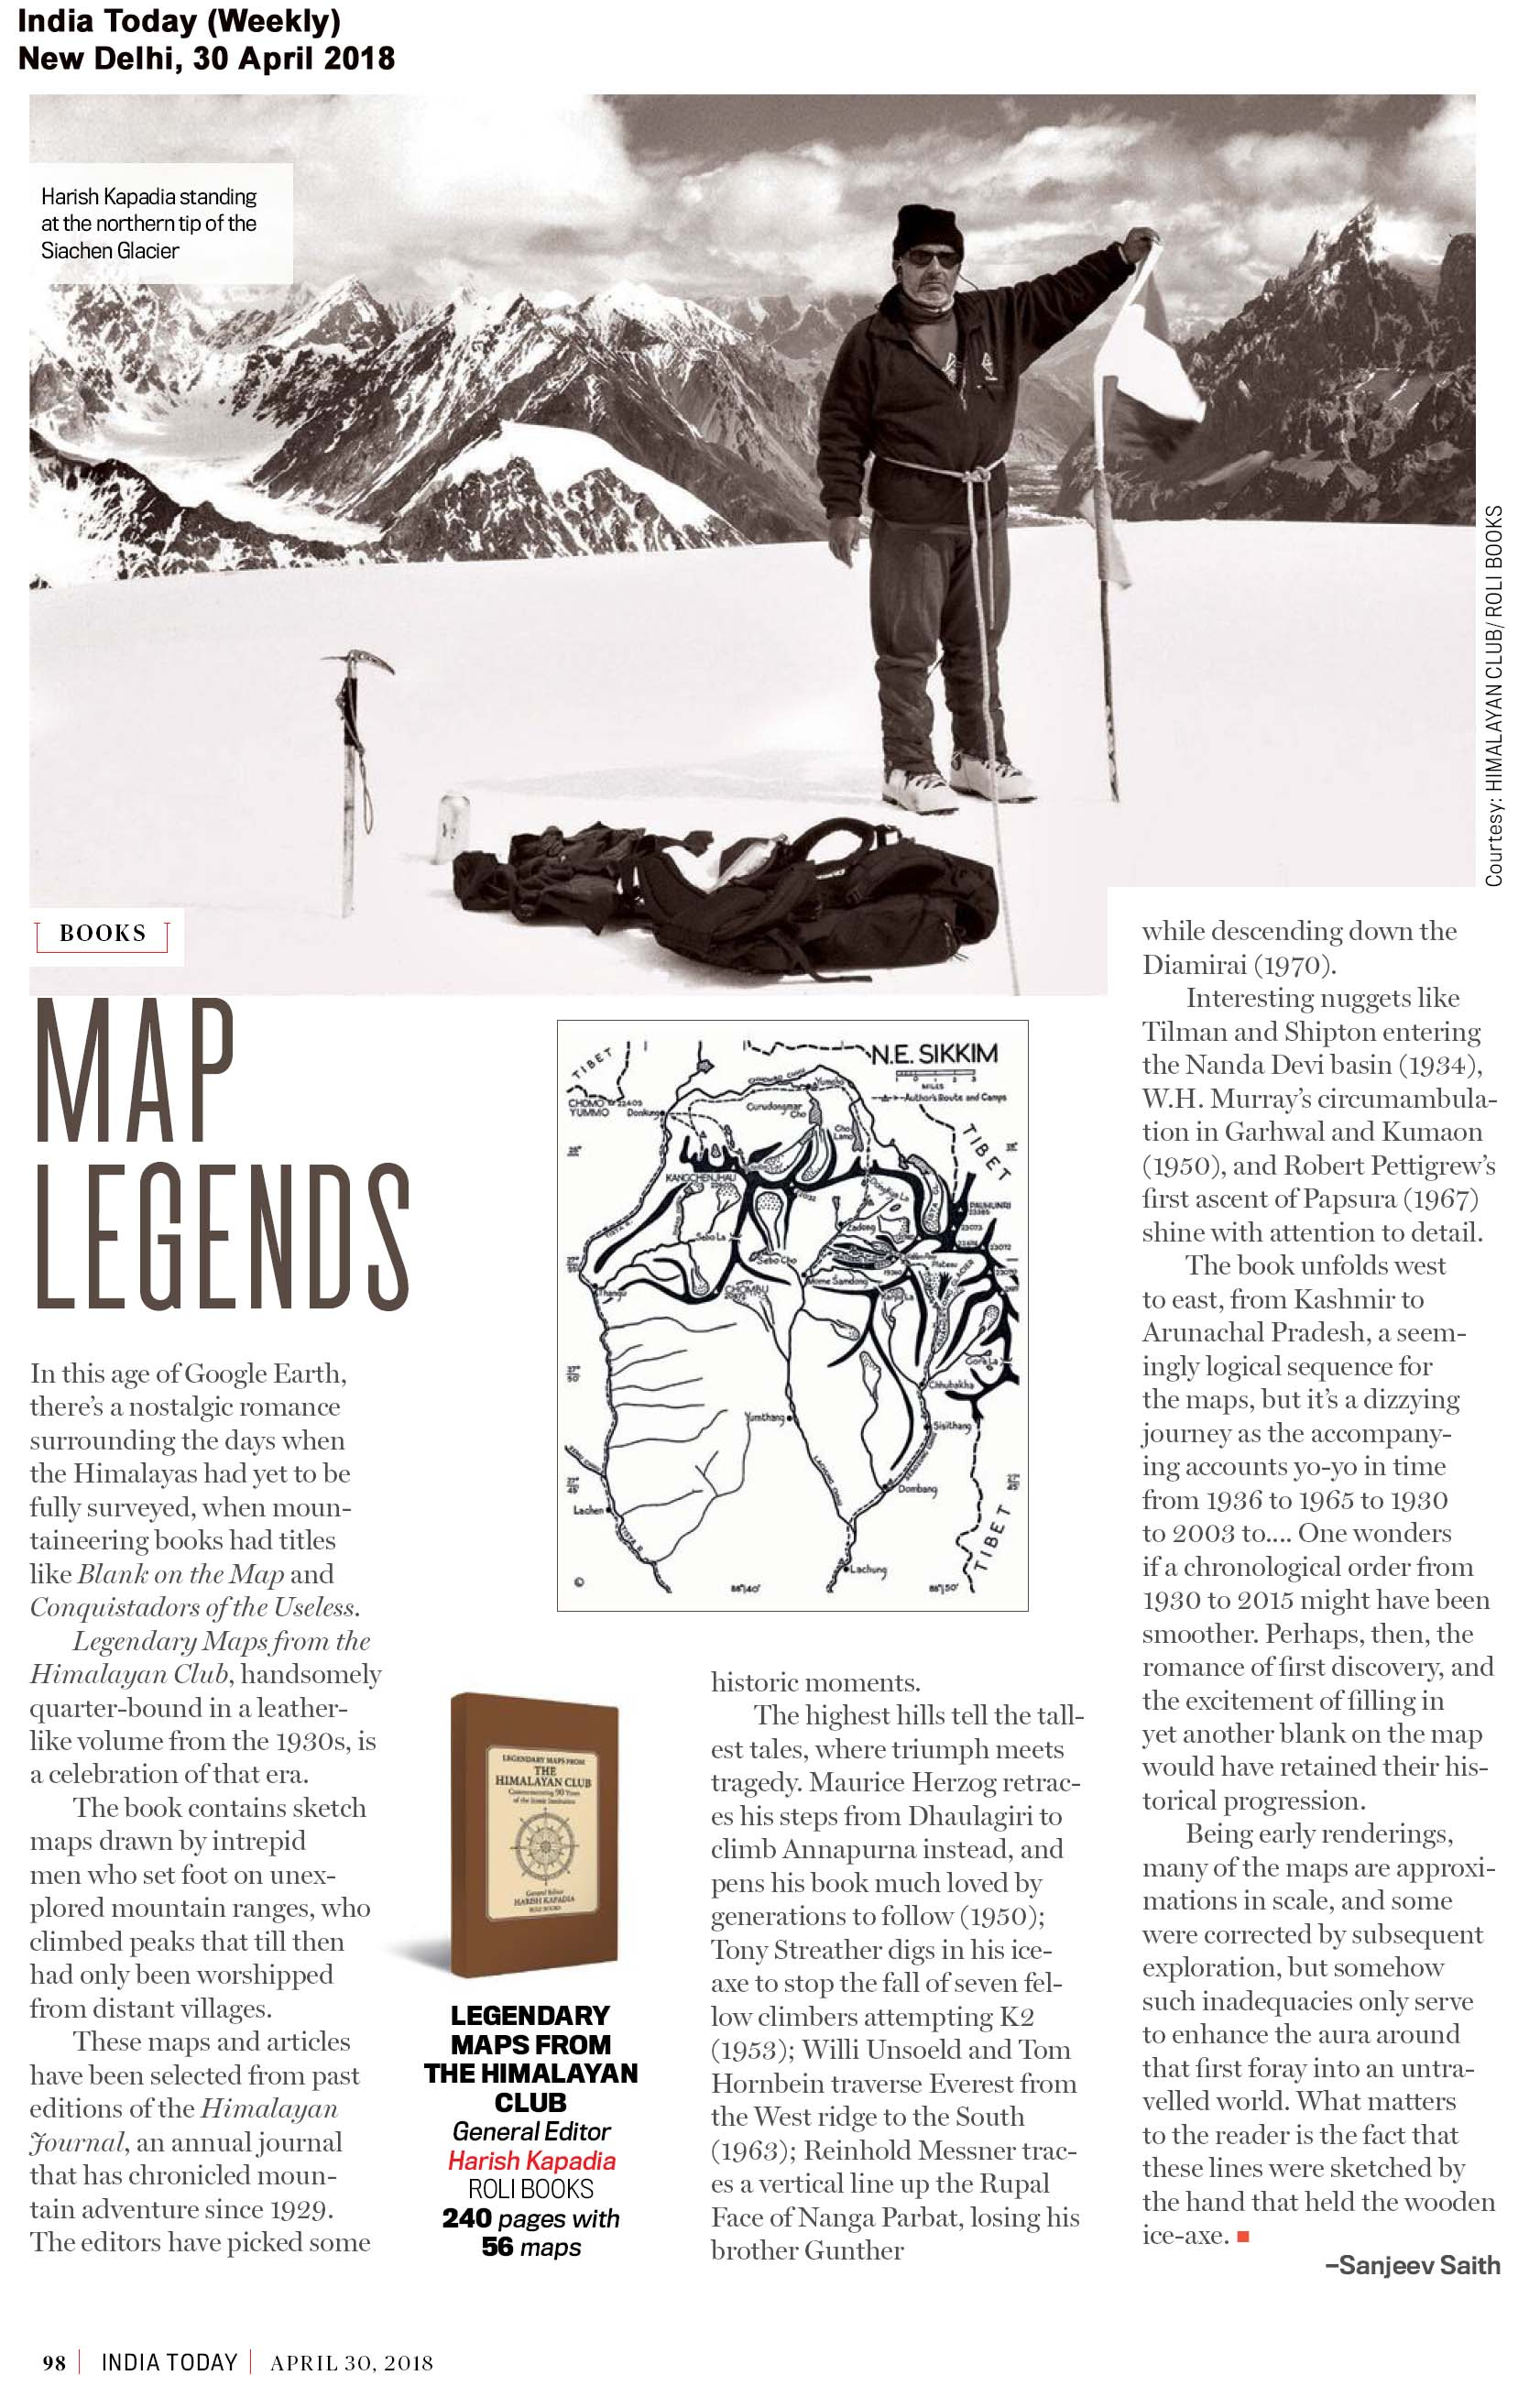 Legendary Maps From The Himalayan Club<br><span> India Today (Weekly), New Delhi</span>